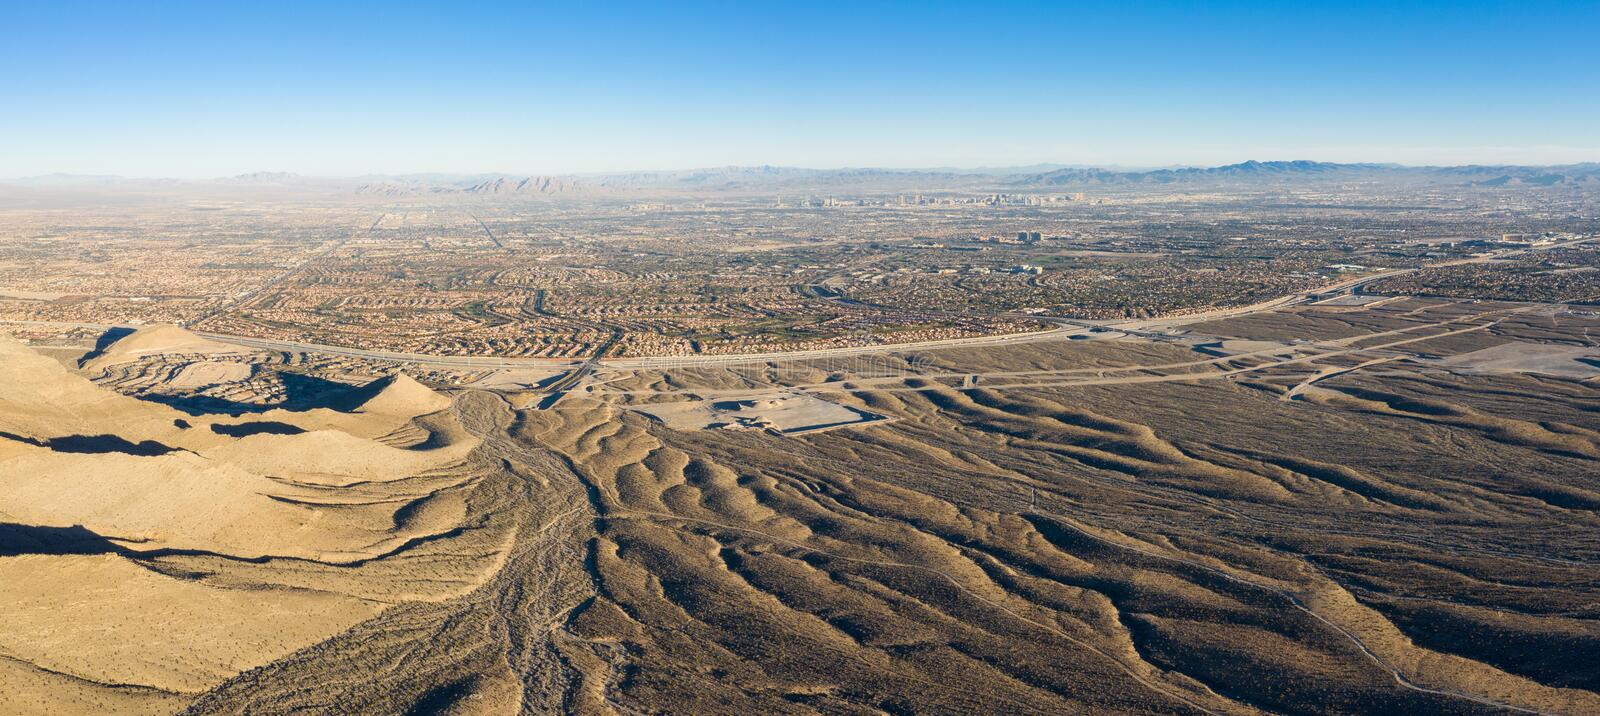 Aerial View of Desert and Housing Developments in Las Vegas royalty free stock images